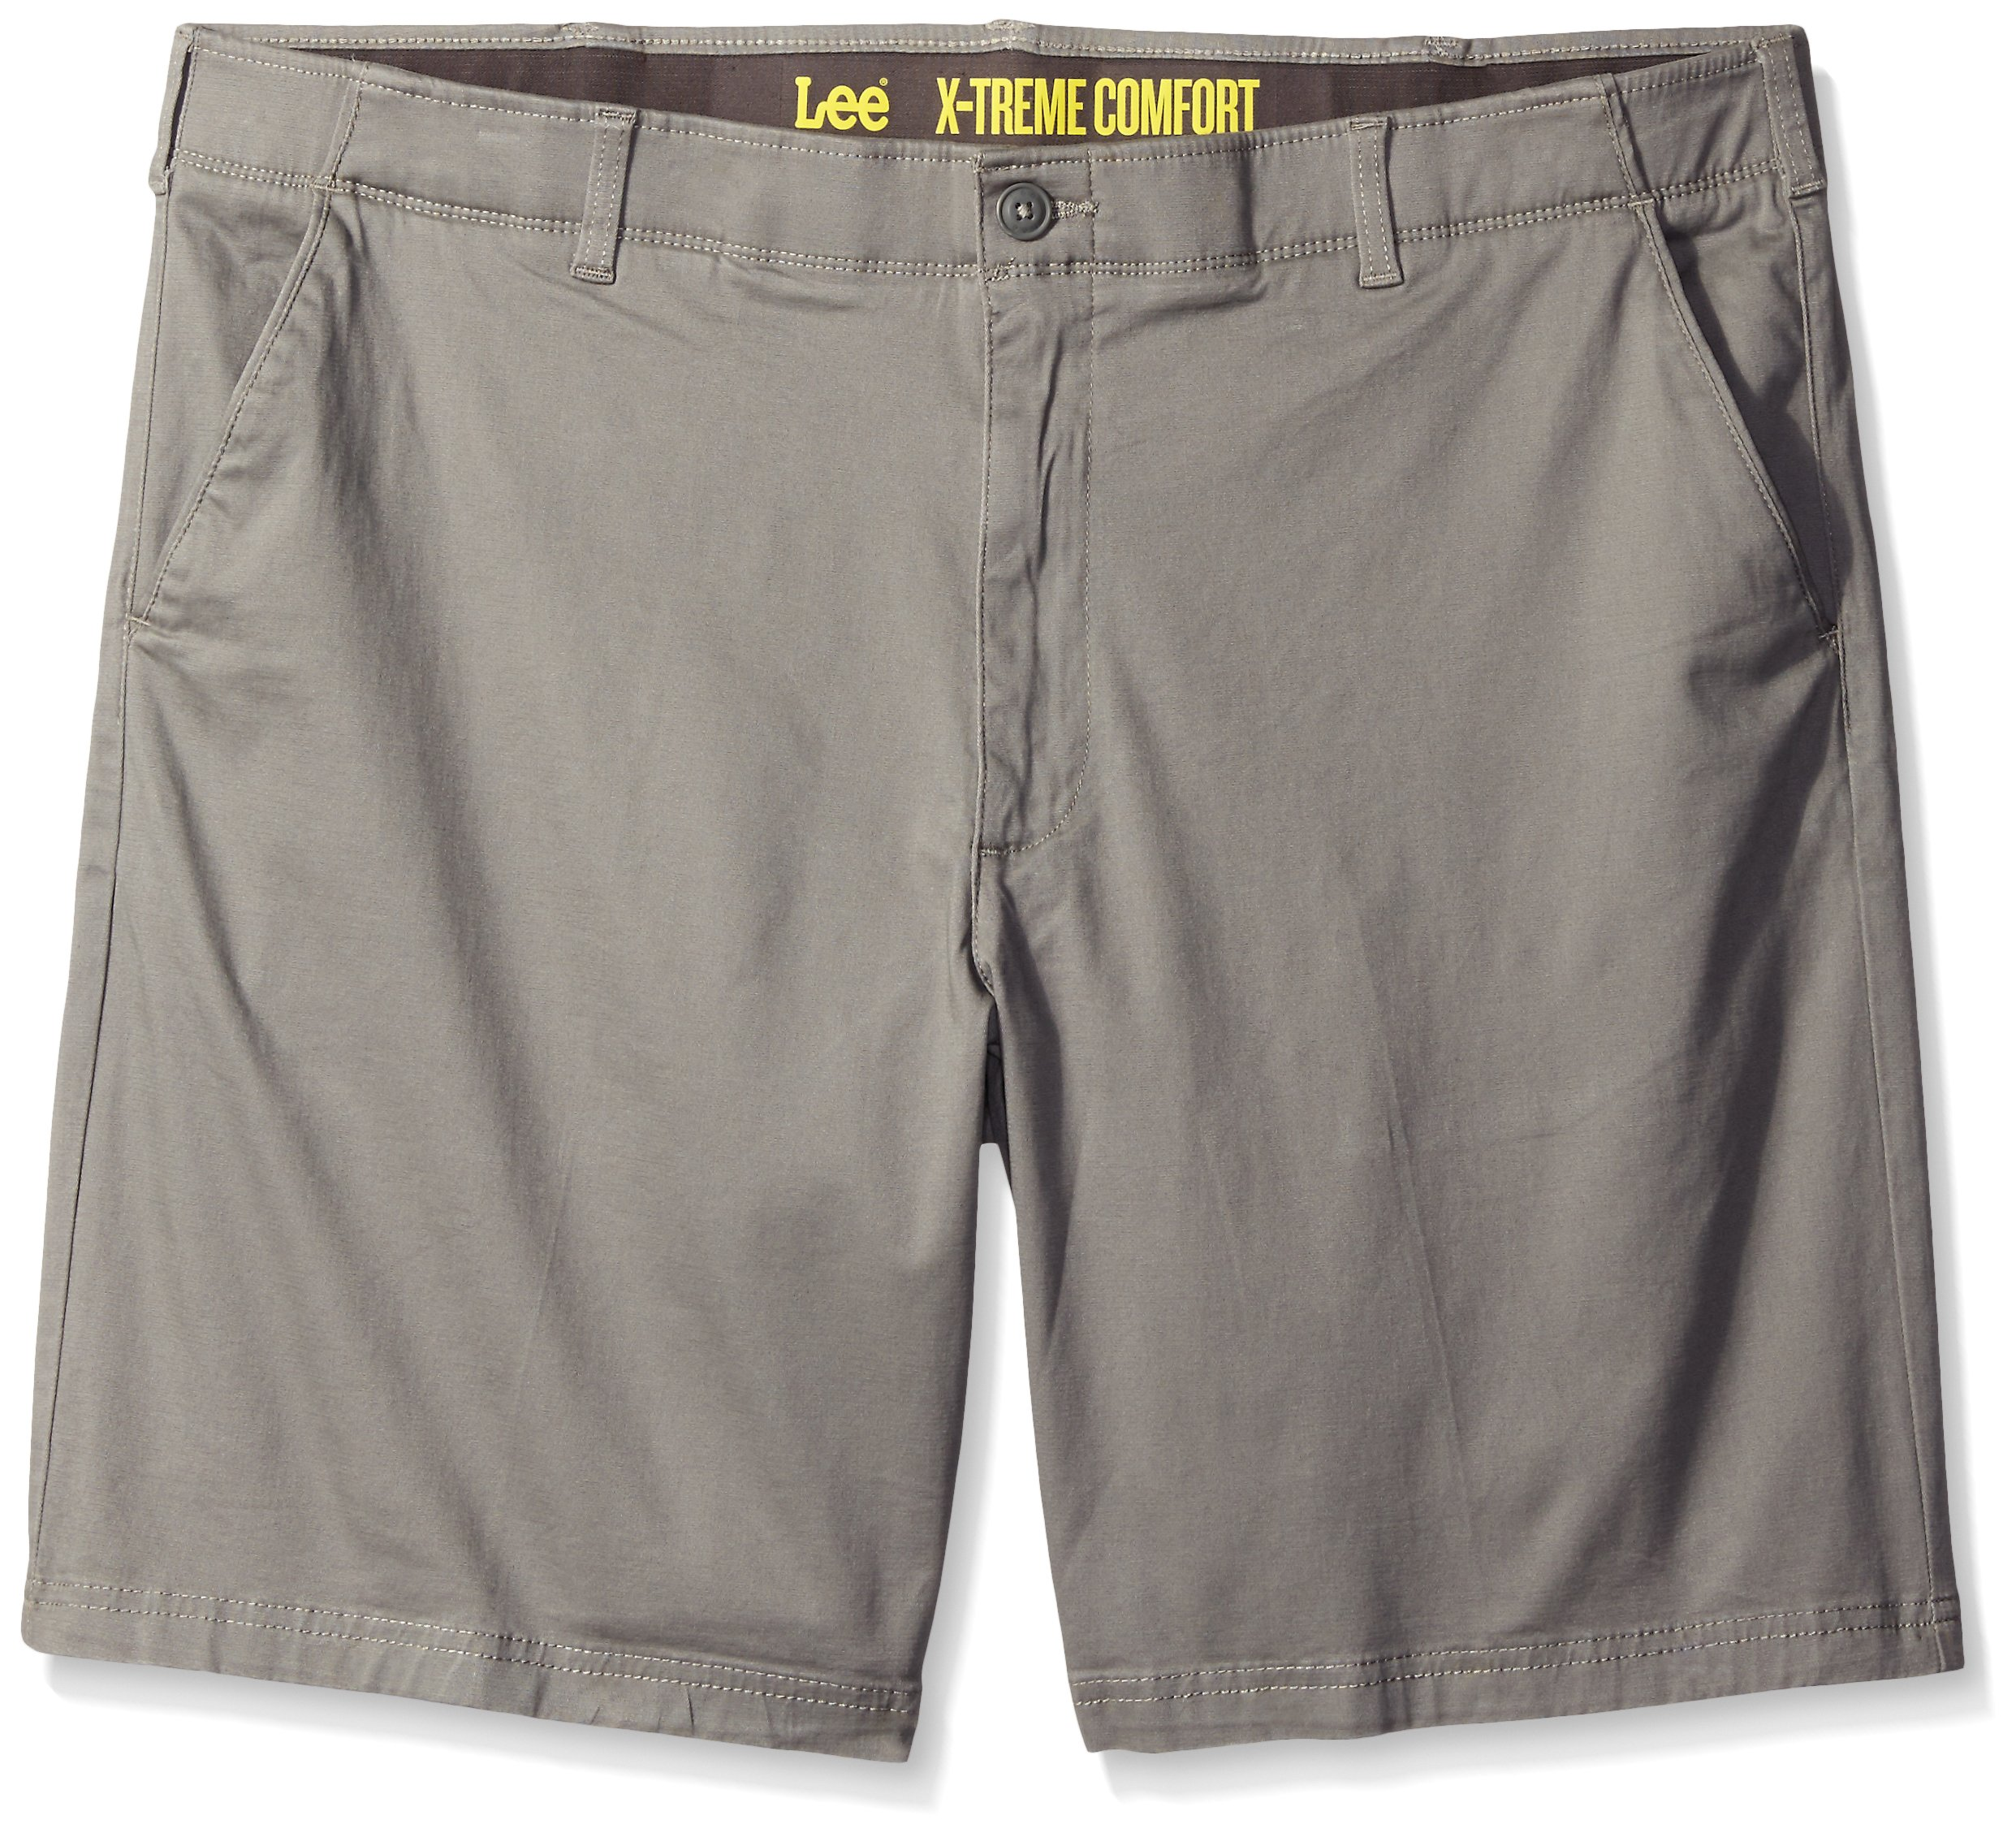 LEE Men's Big-Tall Performance Series Extreme Comfort Short, Iron, 46